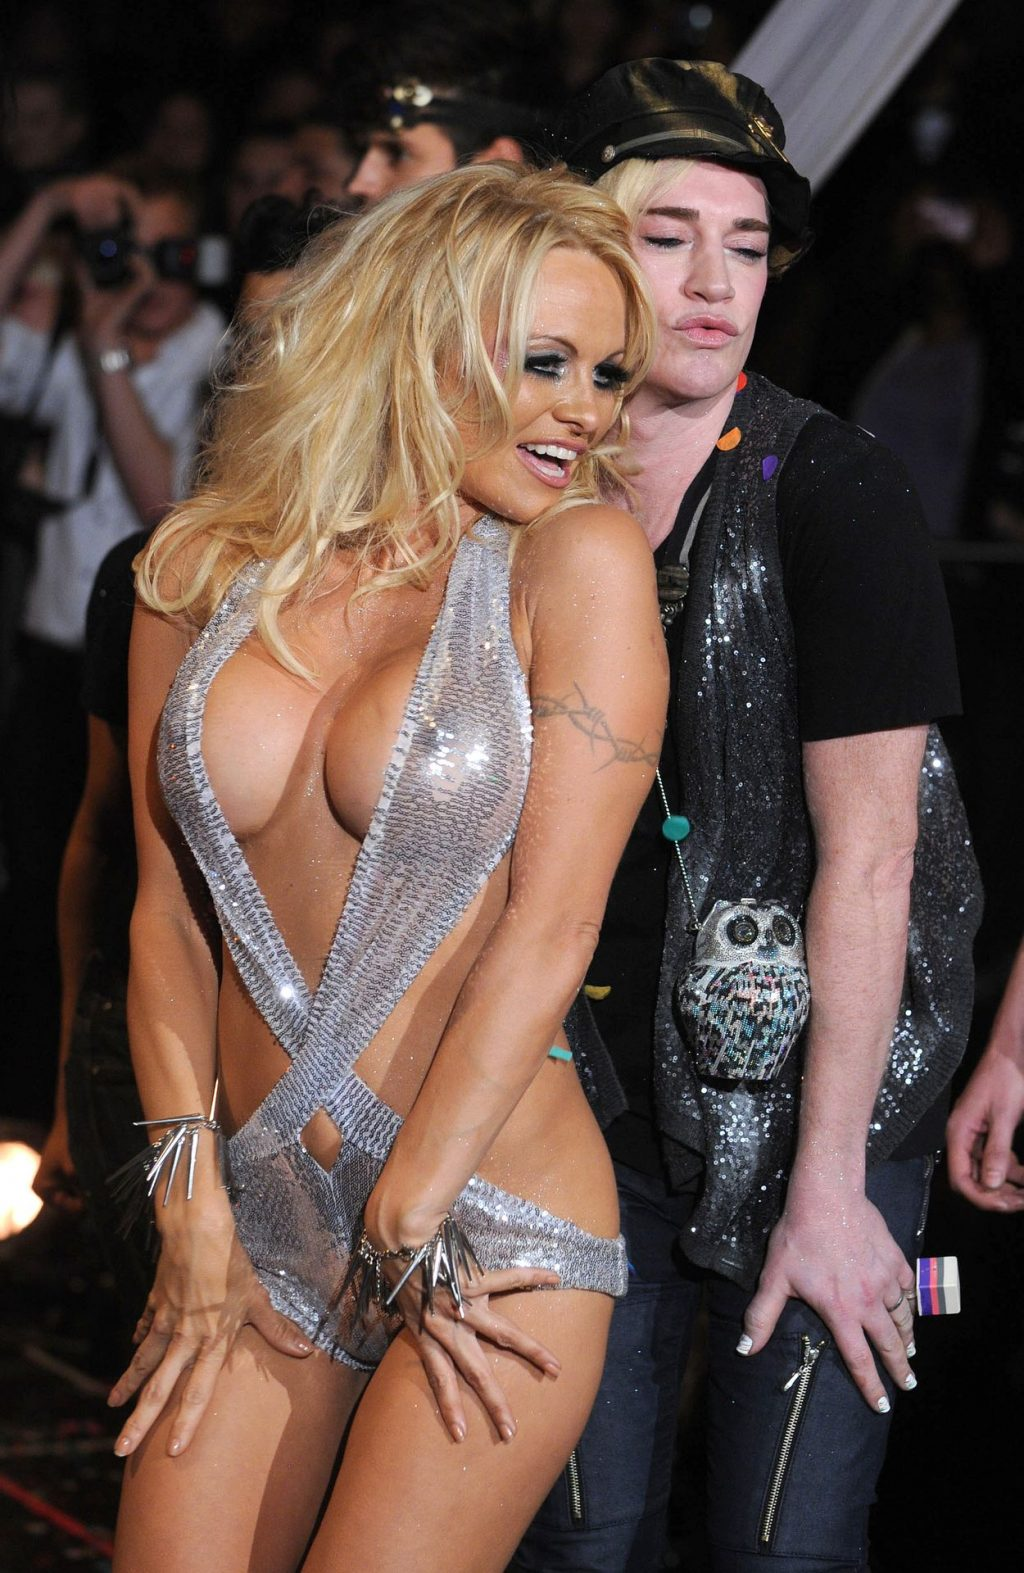 Pamela Anderson Shows Off Her Nude Tits in NYC (7 Photos)